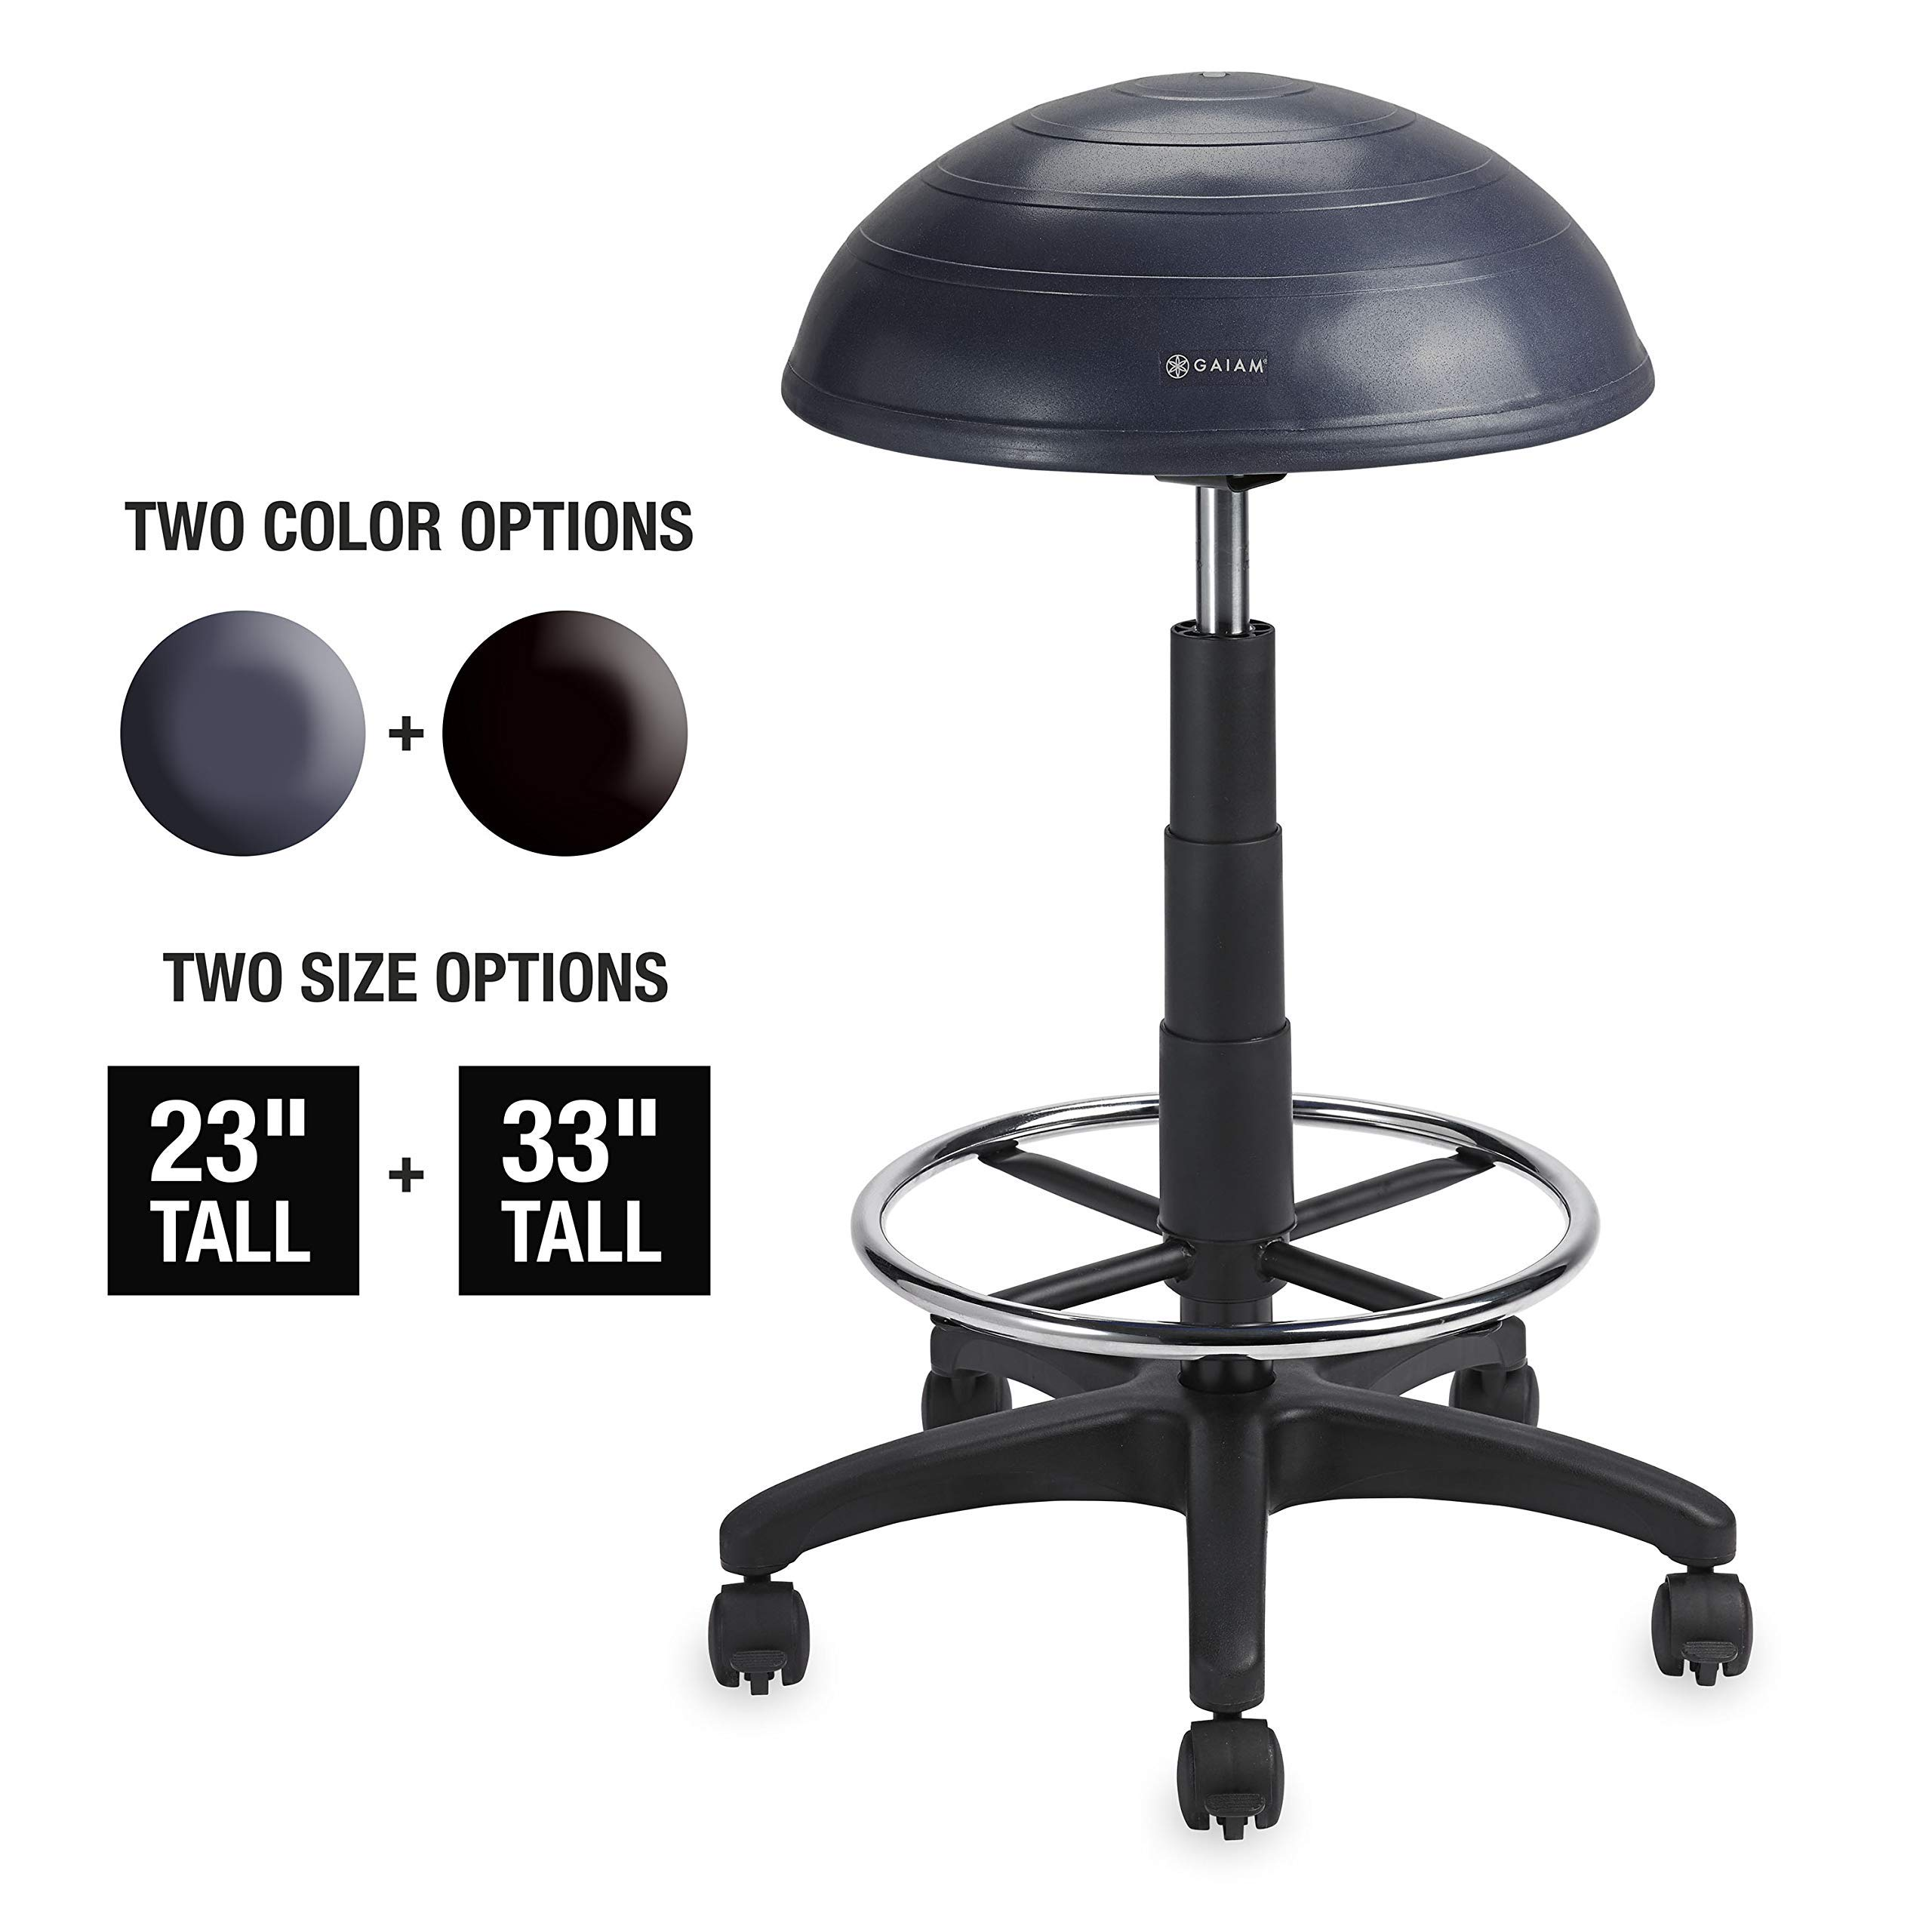 Gaiam Balance Ball Chair Stool, Half-Dome Stability Ball, Adjusts Tall Office Sit Stand Swivel Desk Chair Drafting Stool with Round Foot Rest for Standing Desks Home or Office - Granite 33 (Renewed)